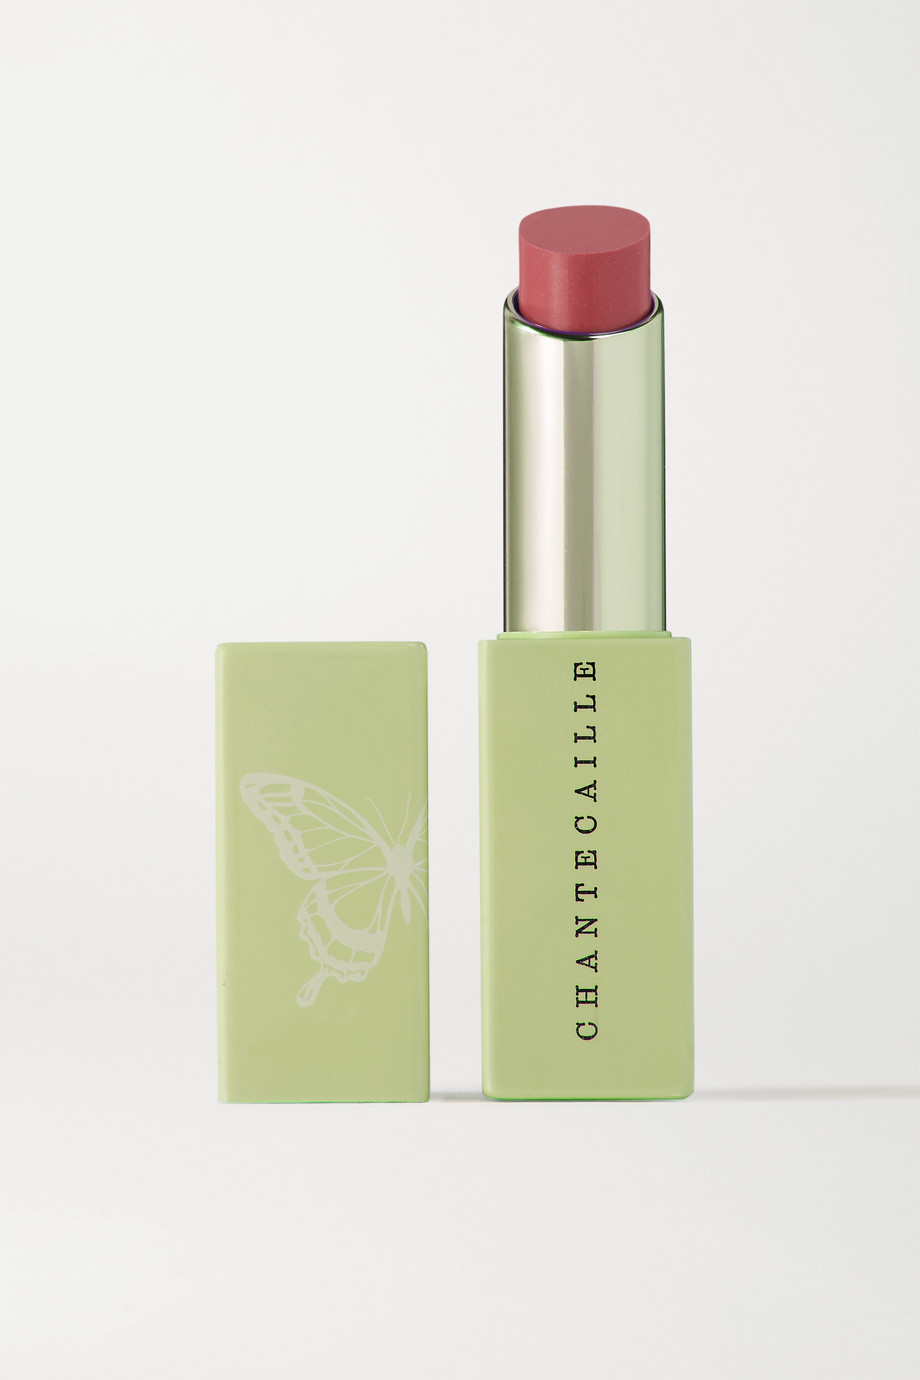 CHANTECAILLE Lip Chic - Peach Blossom